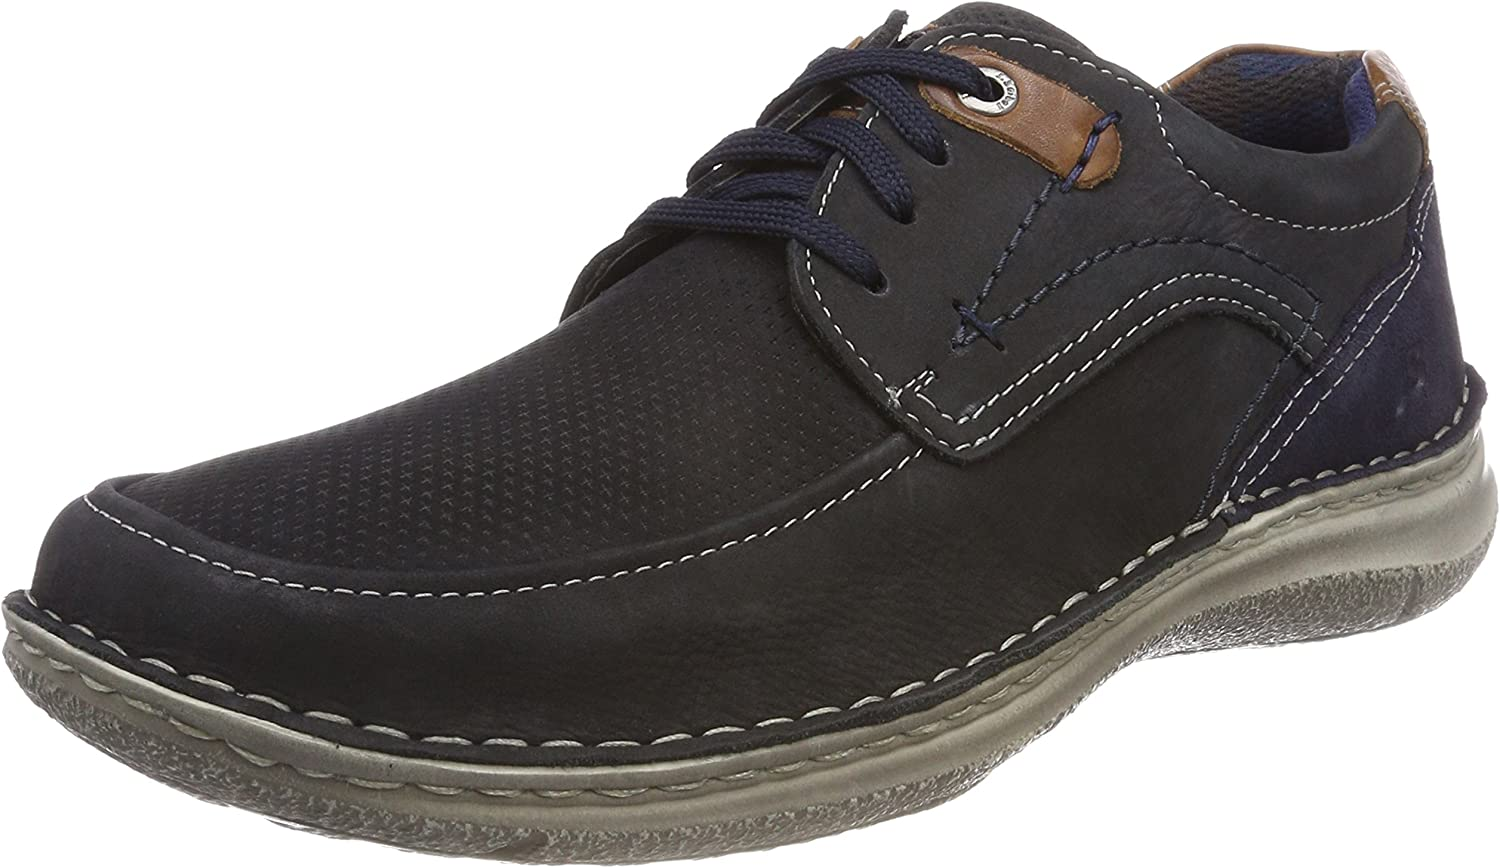 Josef Seibel Anvers 75 - Ocean (Navy) Mens shoes